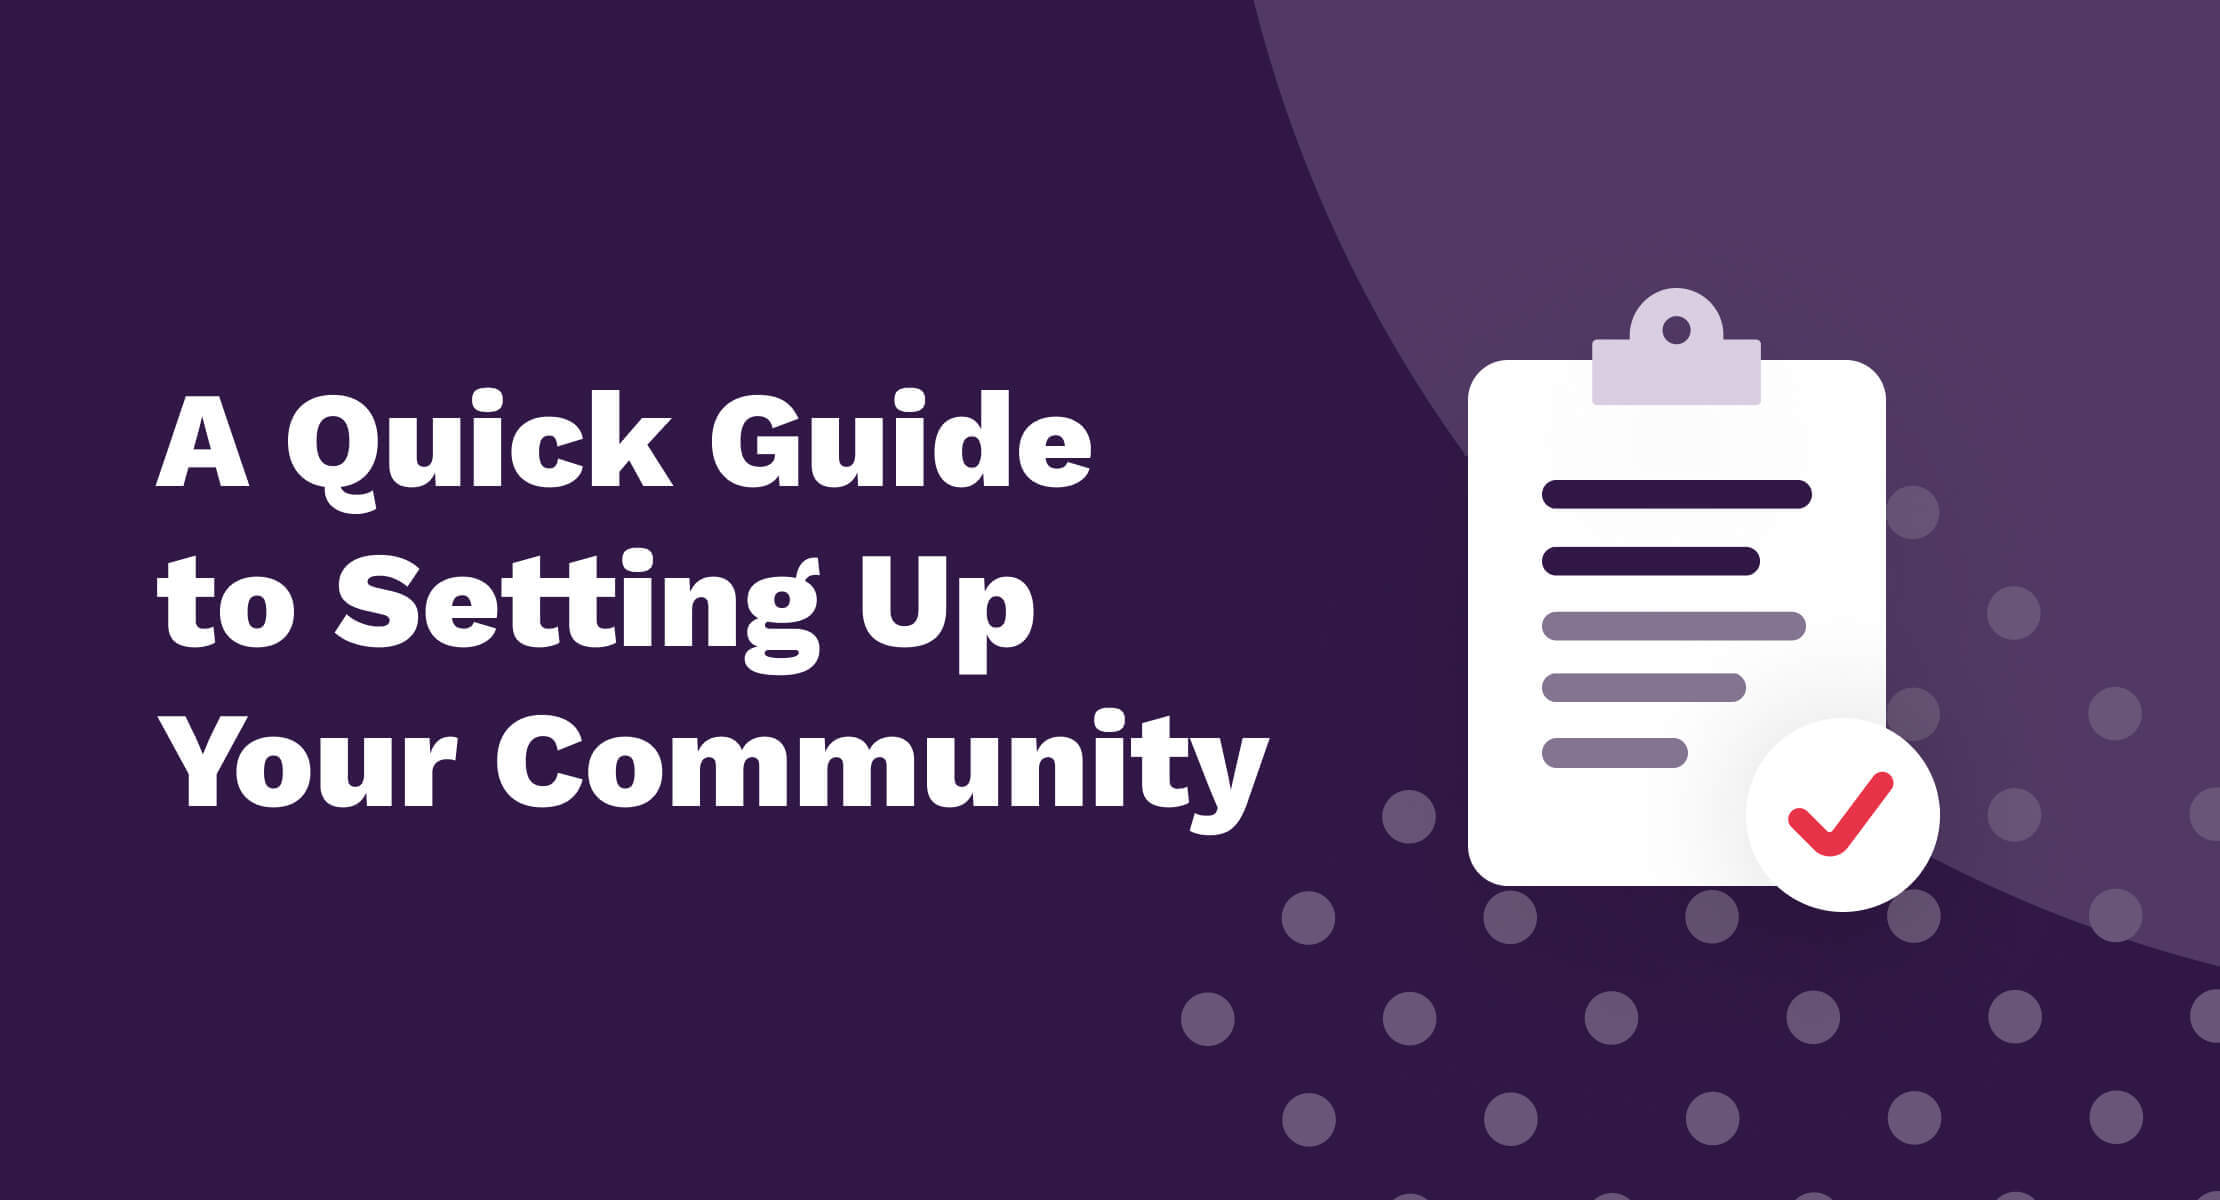 A Quick Guide to Setting Up Your Community